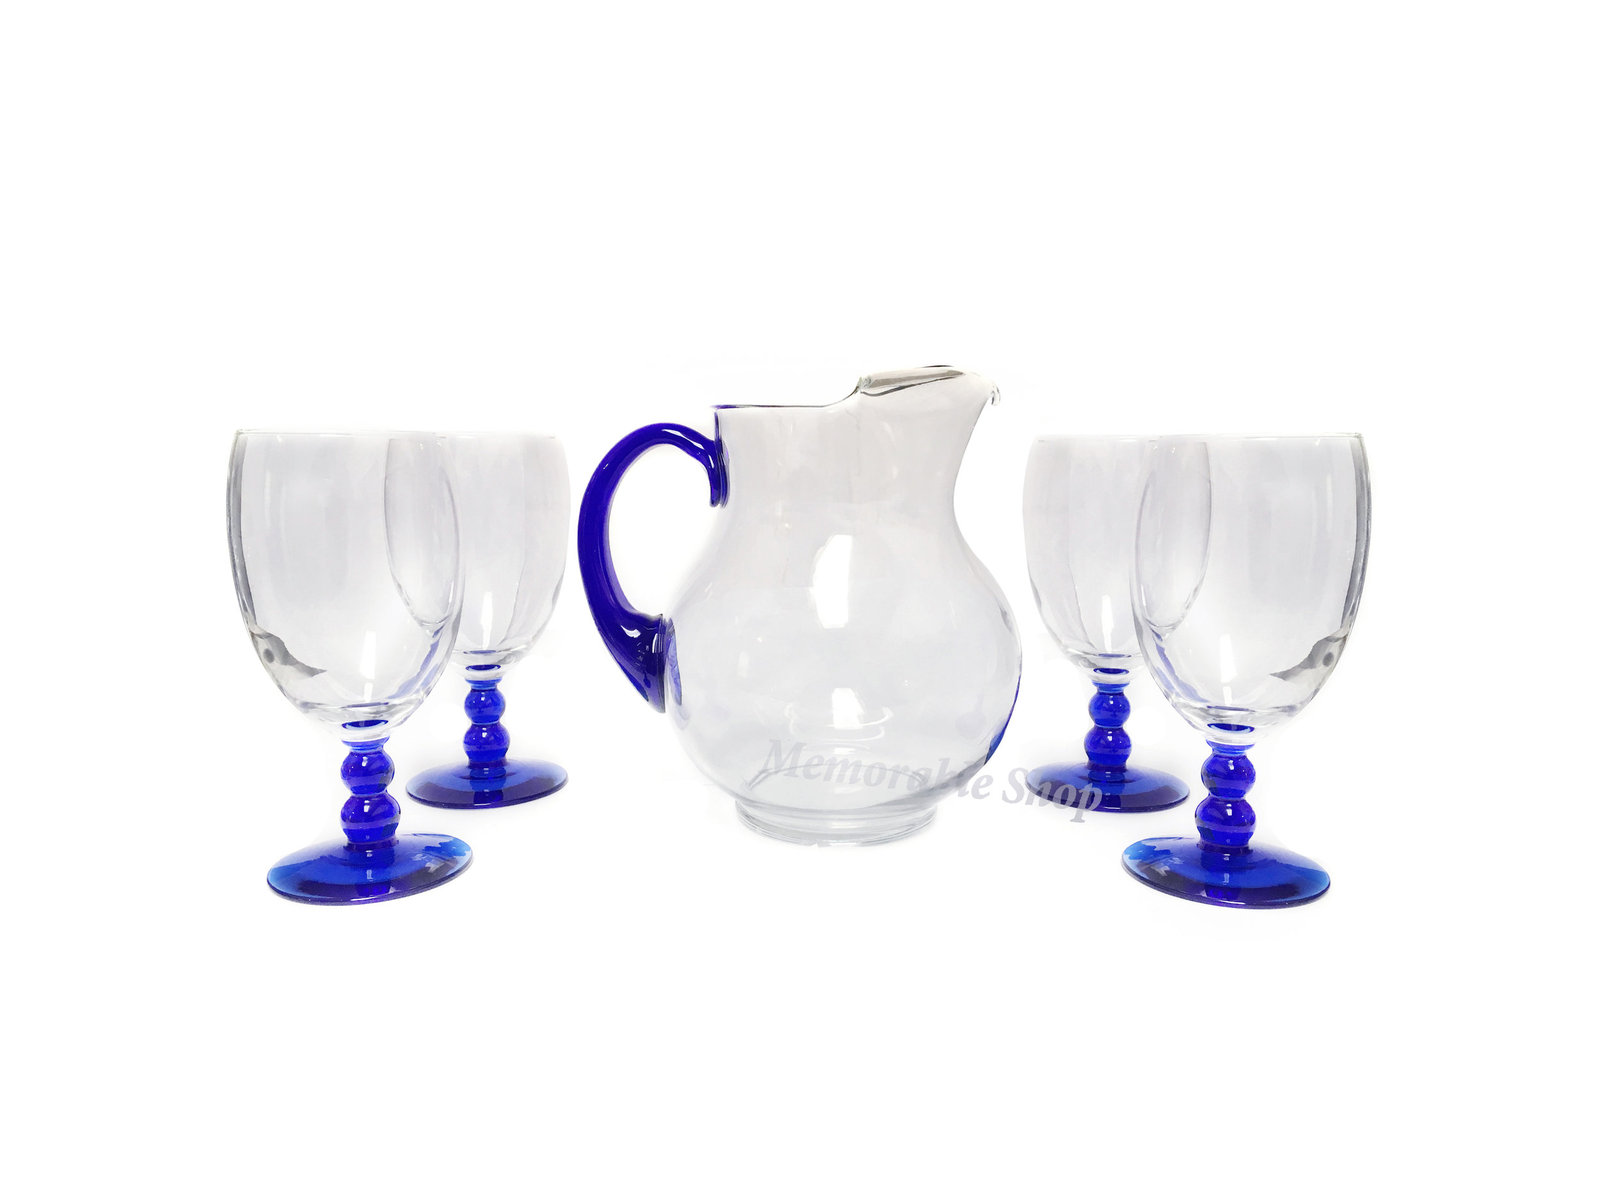 Libbey blue pitcher and goblet iced tea glasses set  2